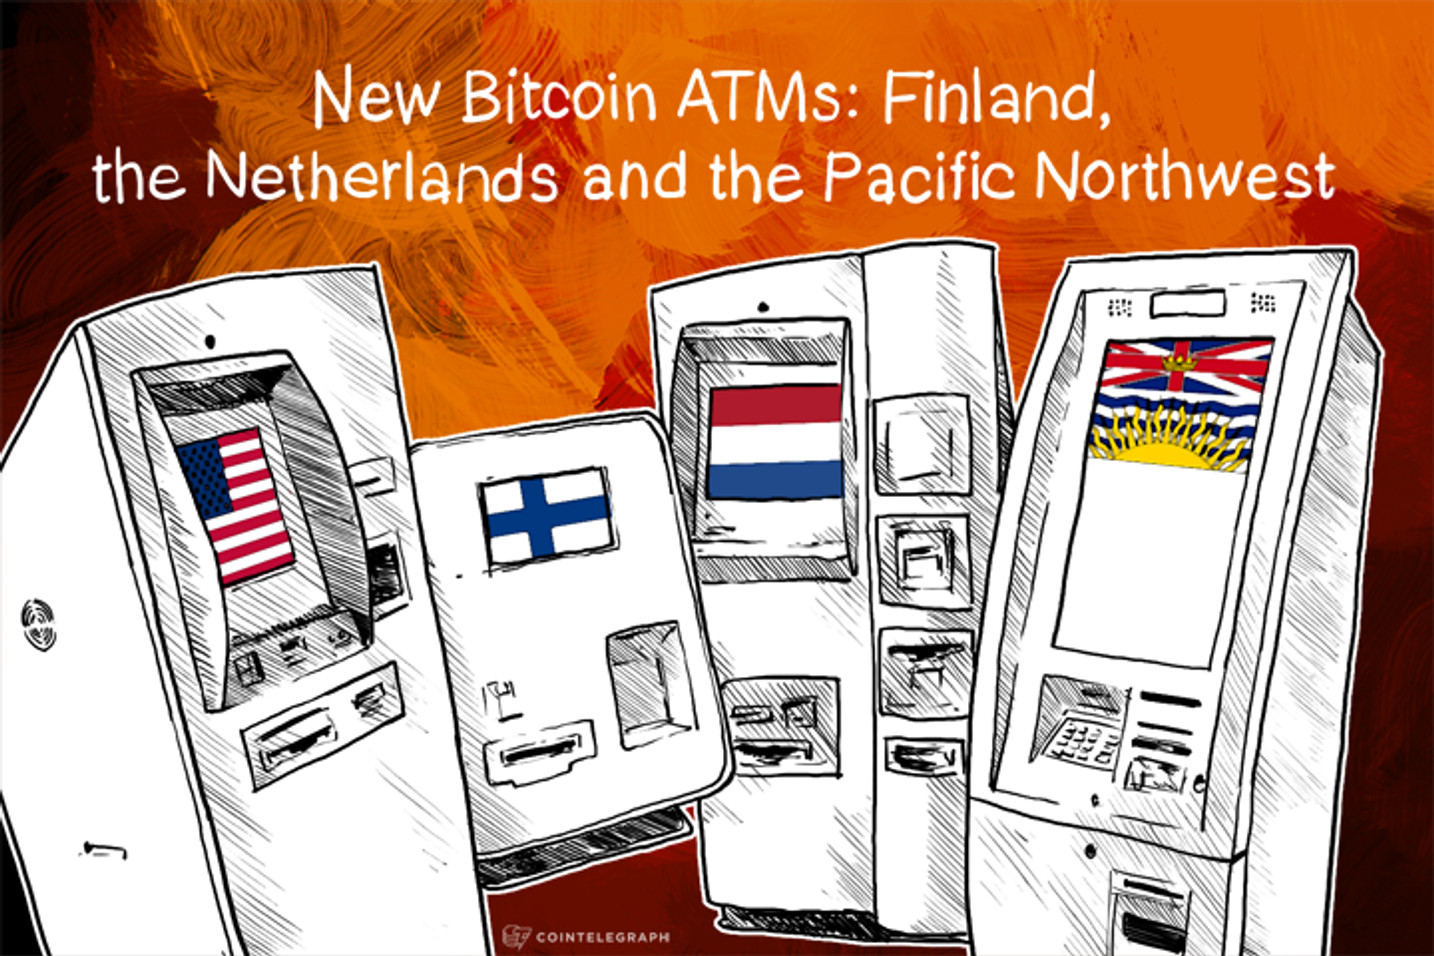 New Bitcoin ATMs: Finland, the Netherlands and the Pacific Northwest